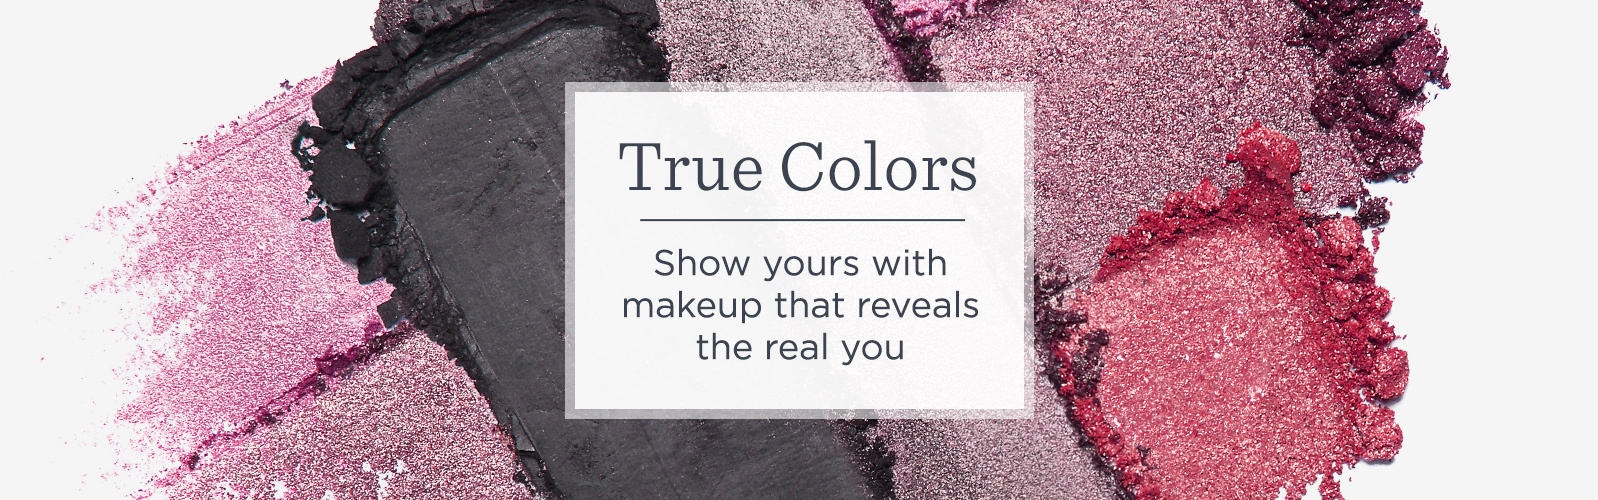 True Colors   Show yours with makeup that reveals the real you